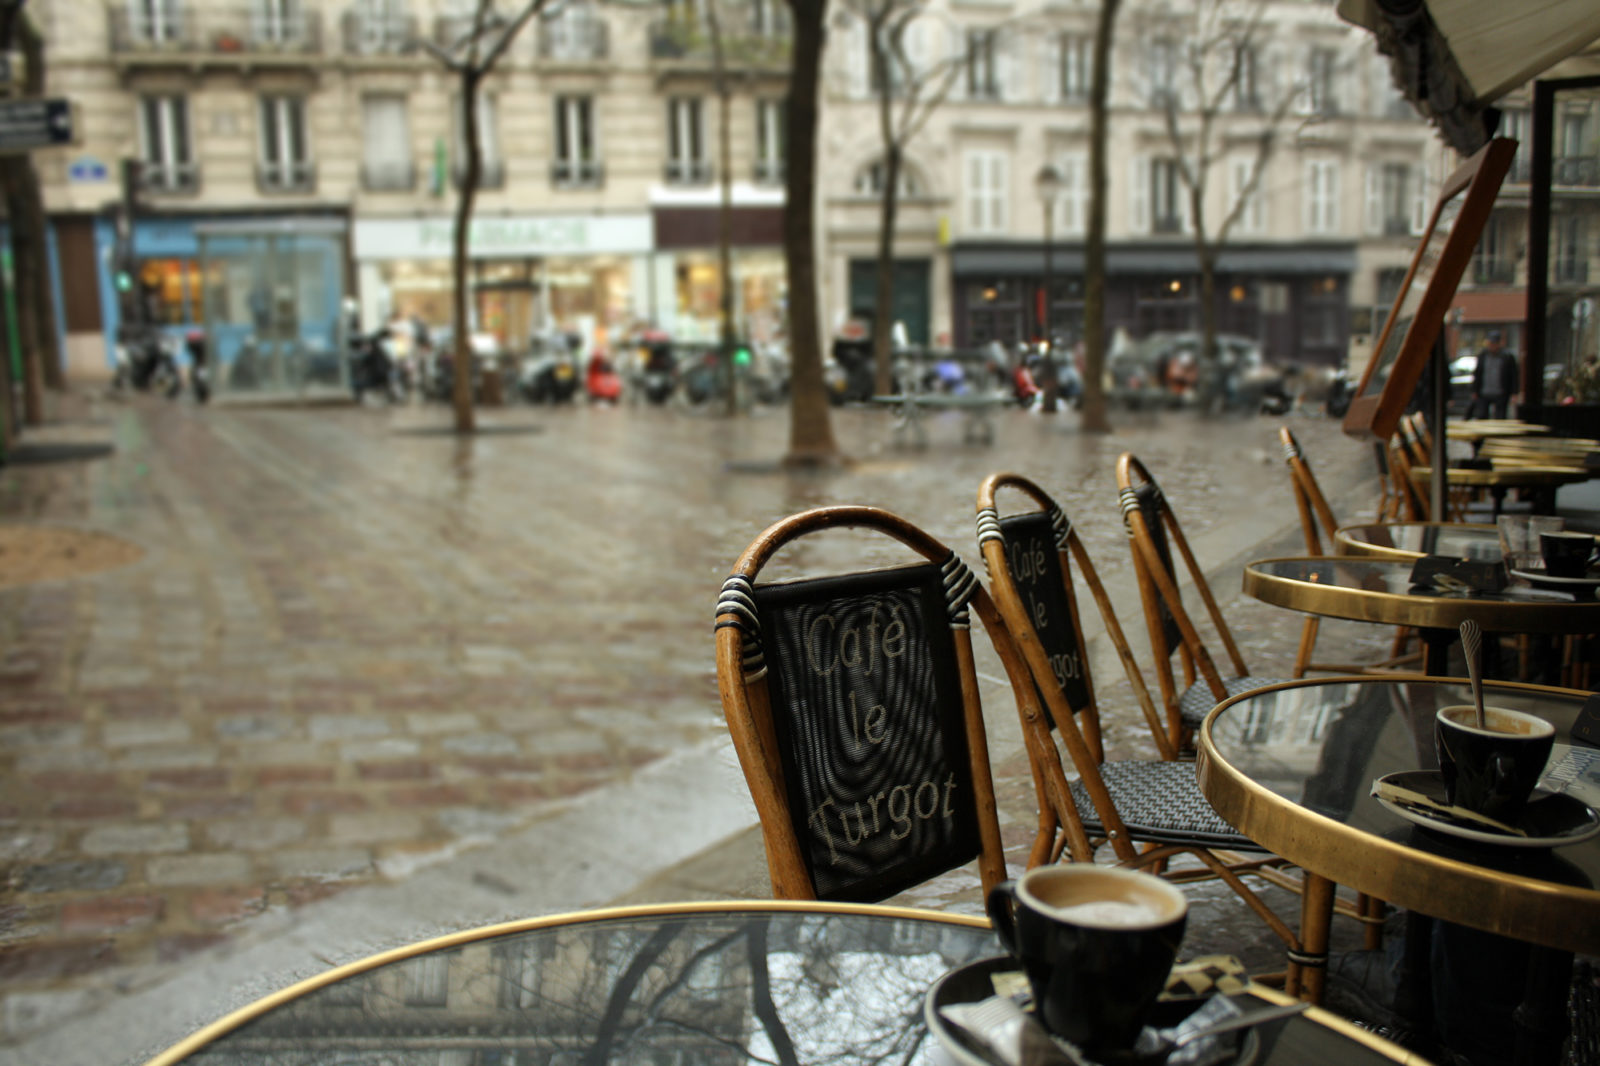 Learning the different meanings of 'non' in Paris